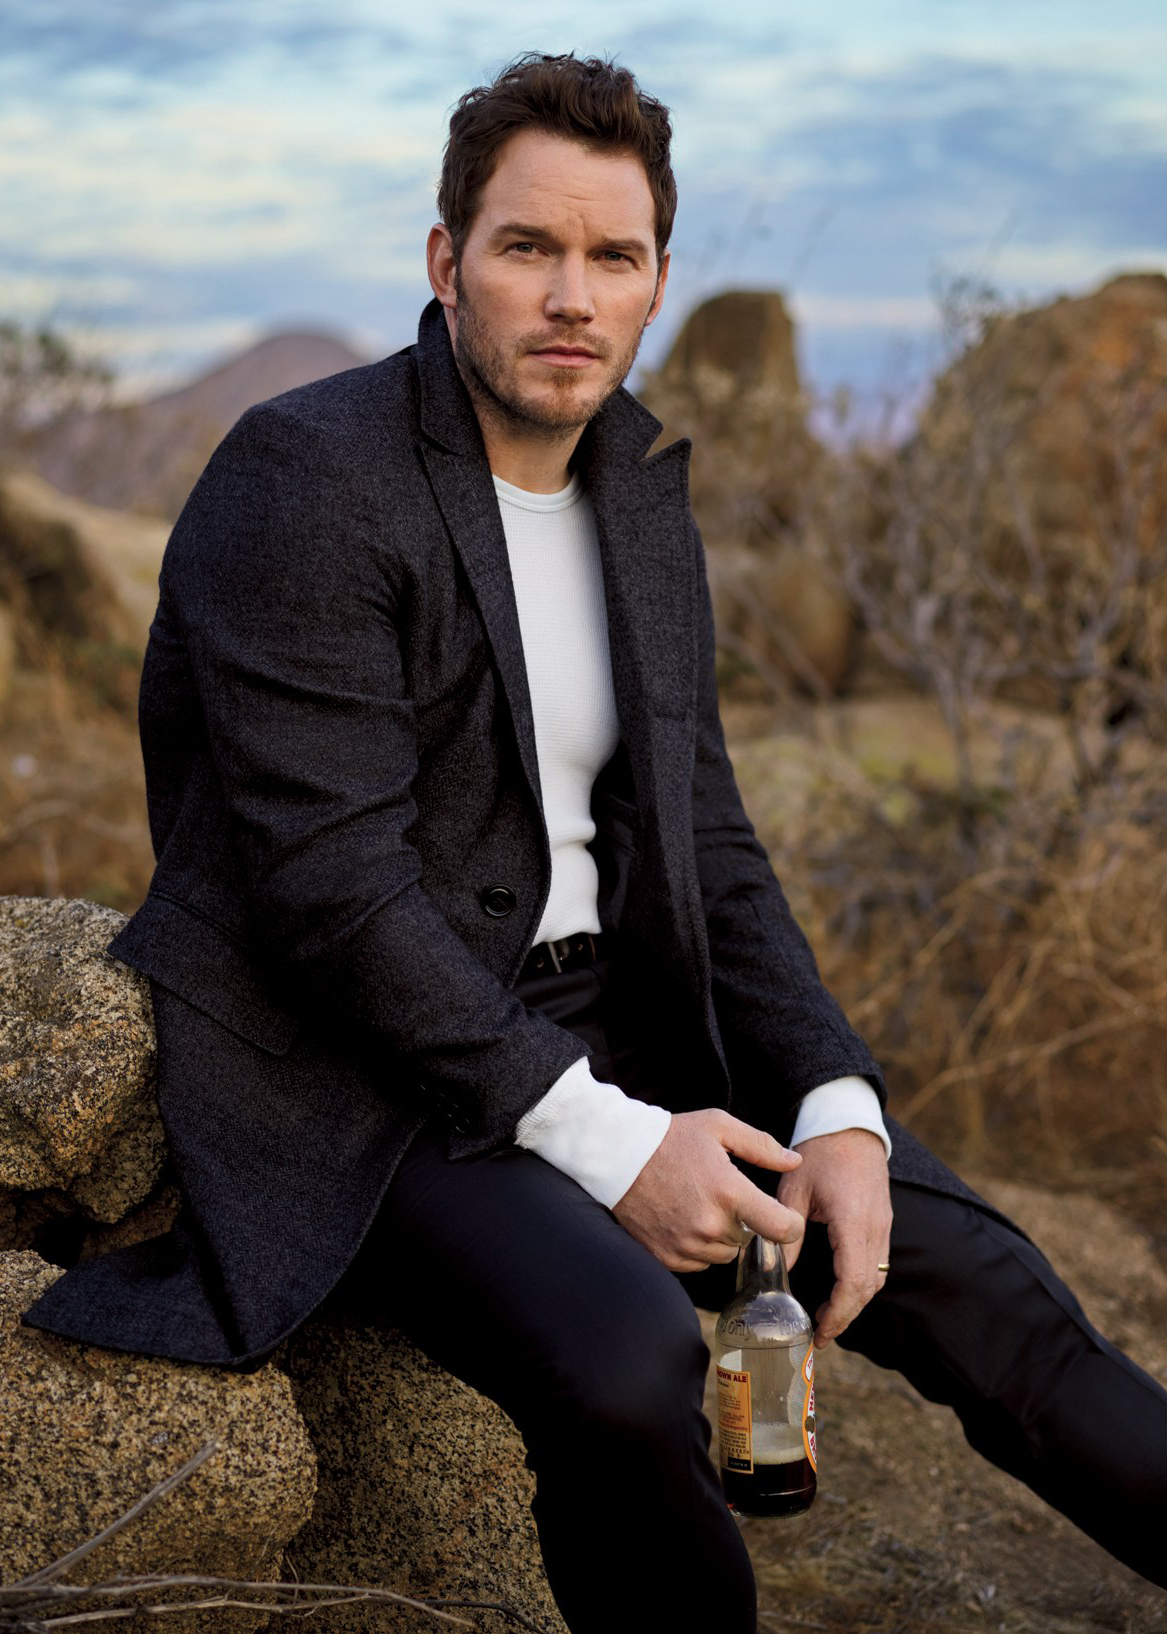 Chris Pratt photo #761446